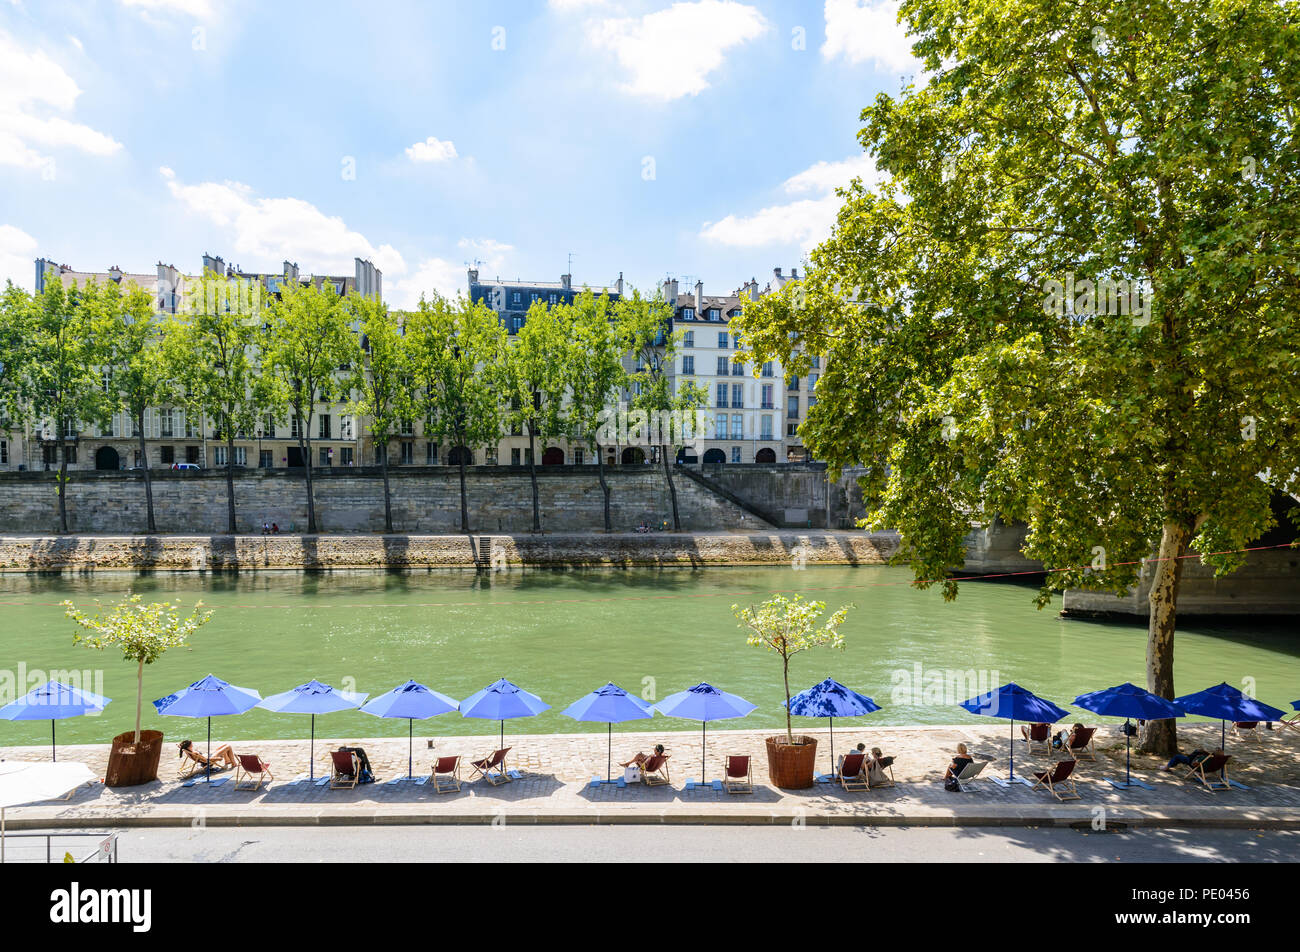 The banks of the Seine with deck chairs and parasols during Paris-Plages summer event in Paris, France, with the Ile de la Cite in the background. - Stock Image